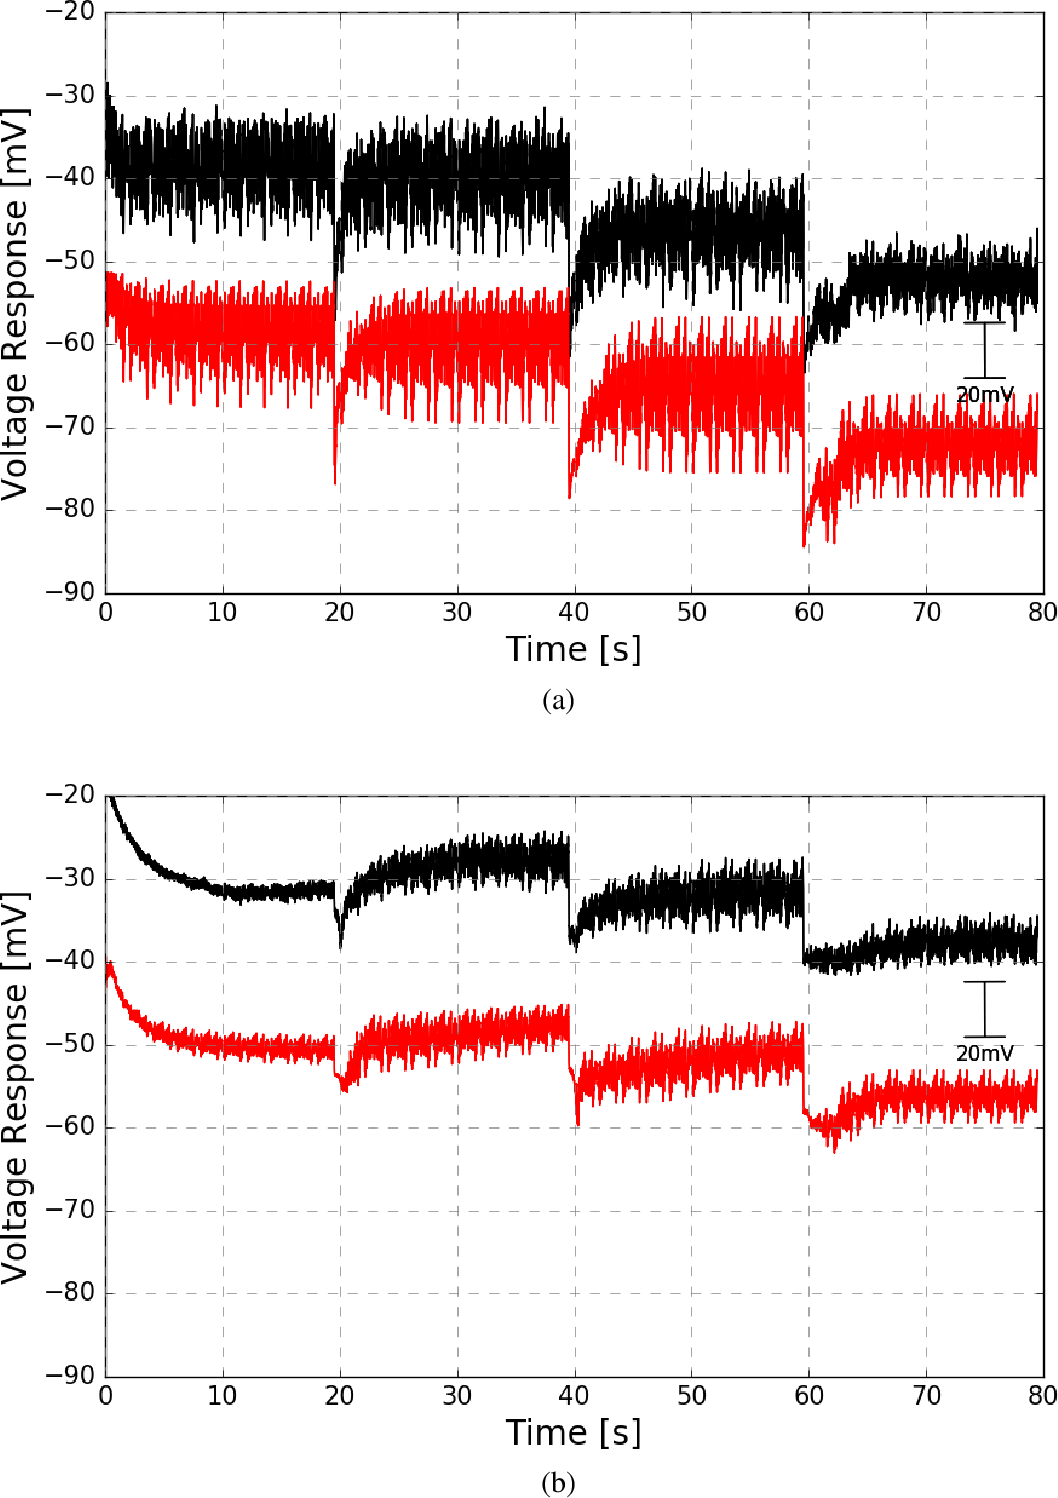 Fig. 4.13 Model validation, using the mean and contrast adaptation gains implemented with controller structure proposed in figure 4.10, of wild and mutant photoreceptor responses to naturalistic stimuli. Fig. 4.9a shows the comparison between the in vivo photoreceptor recorded data (black) and the model prediction (red) for the wild fly. A similar comparison for the mutant fly is shown in Fig. 4.9b. Model prediction has been added an offset of -20mv.